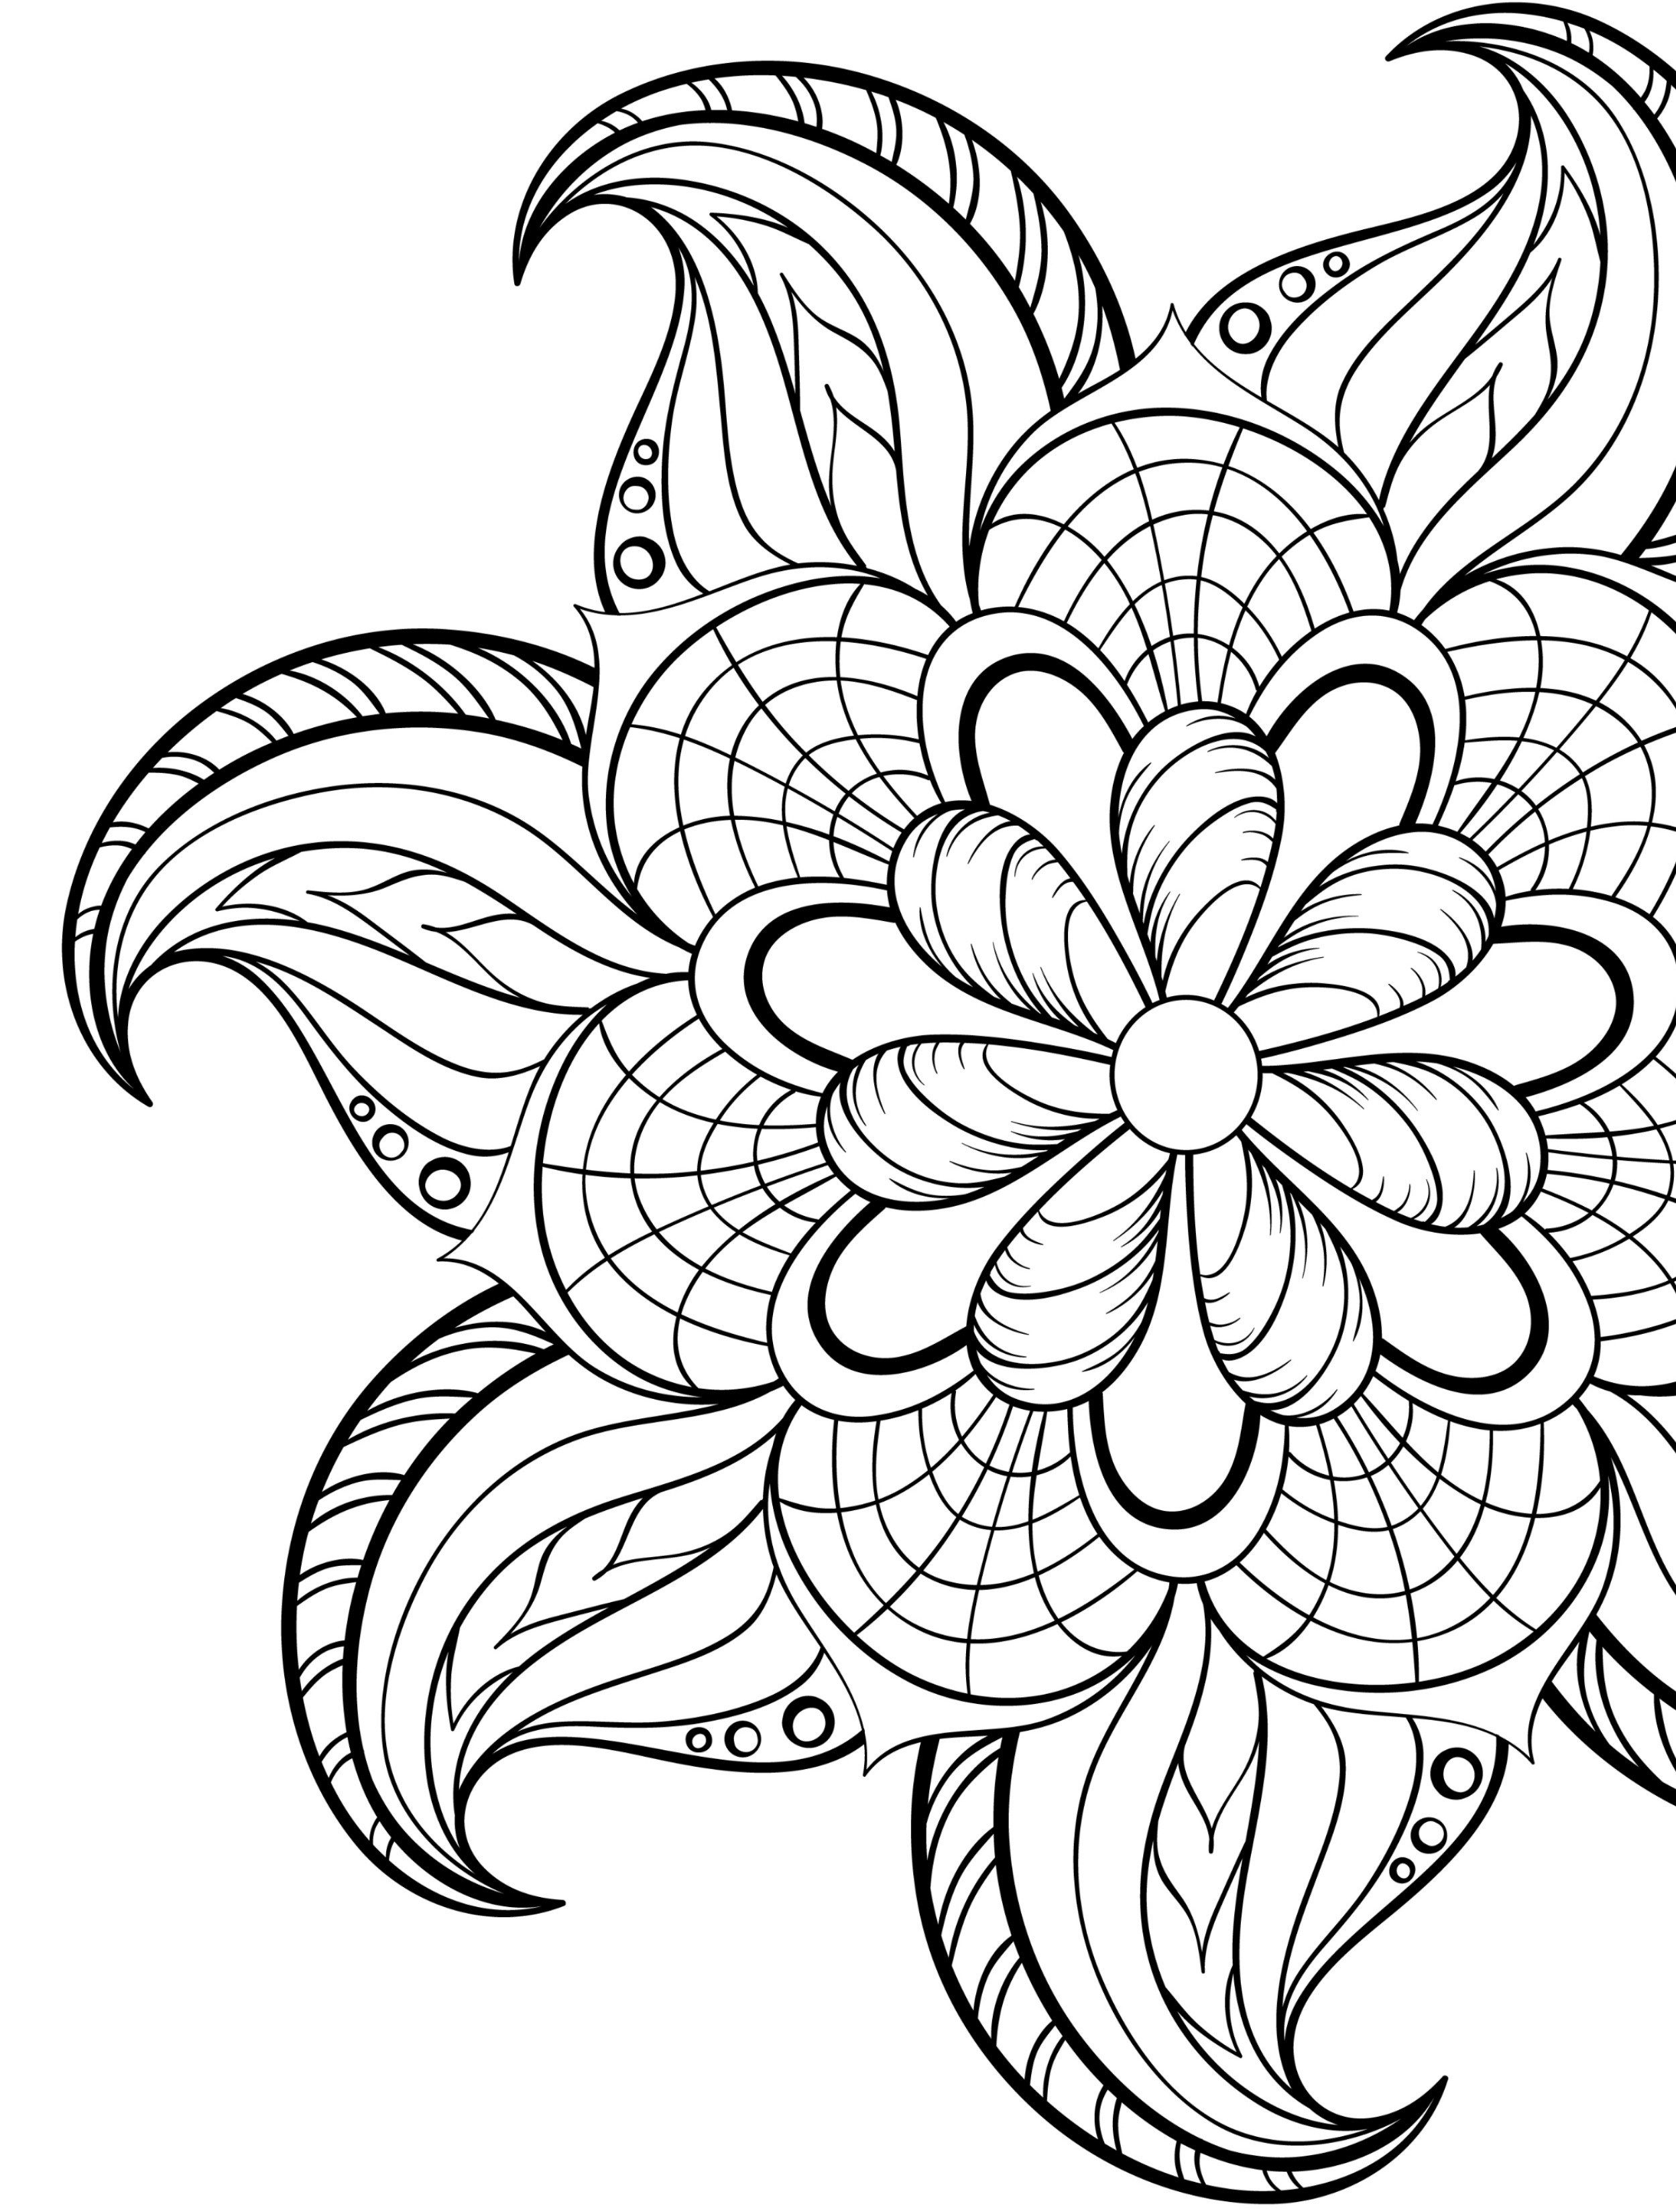 20 Gorgeous Free Printable Adult Coloring Pages | Color